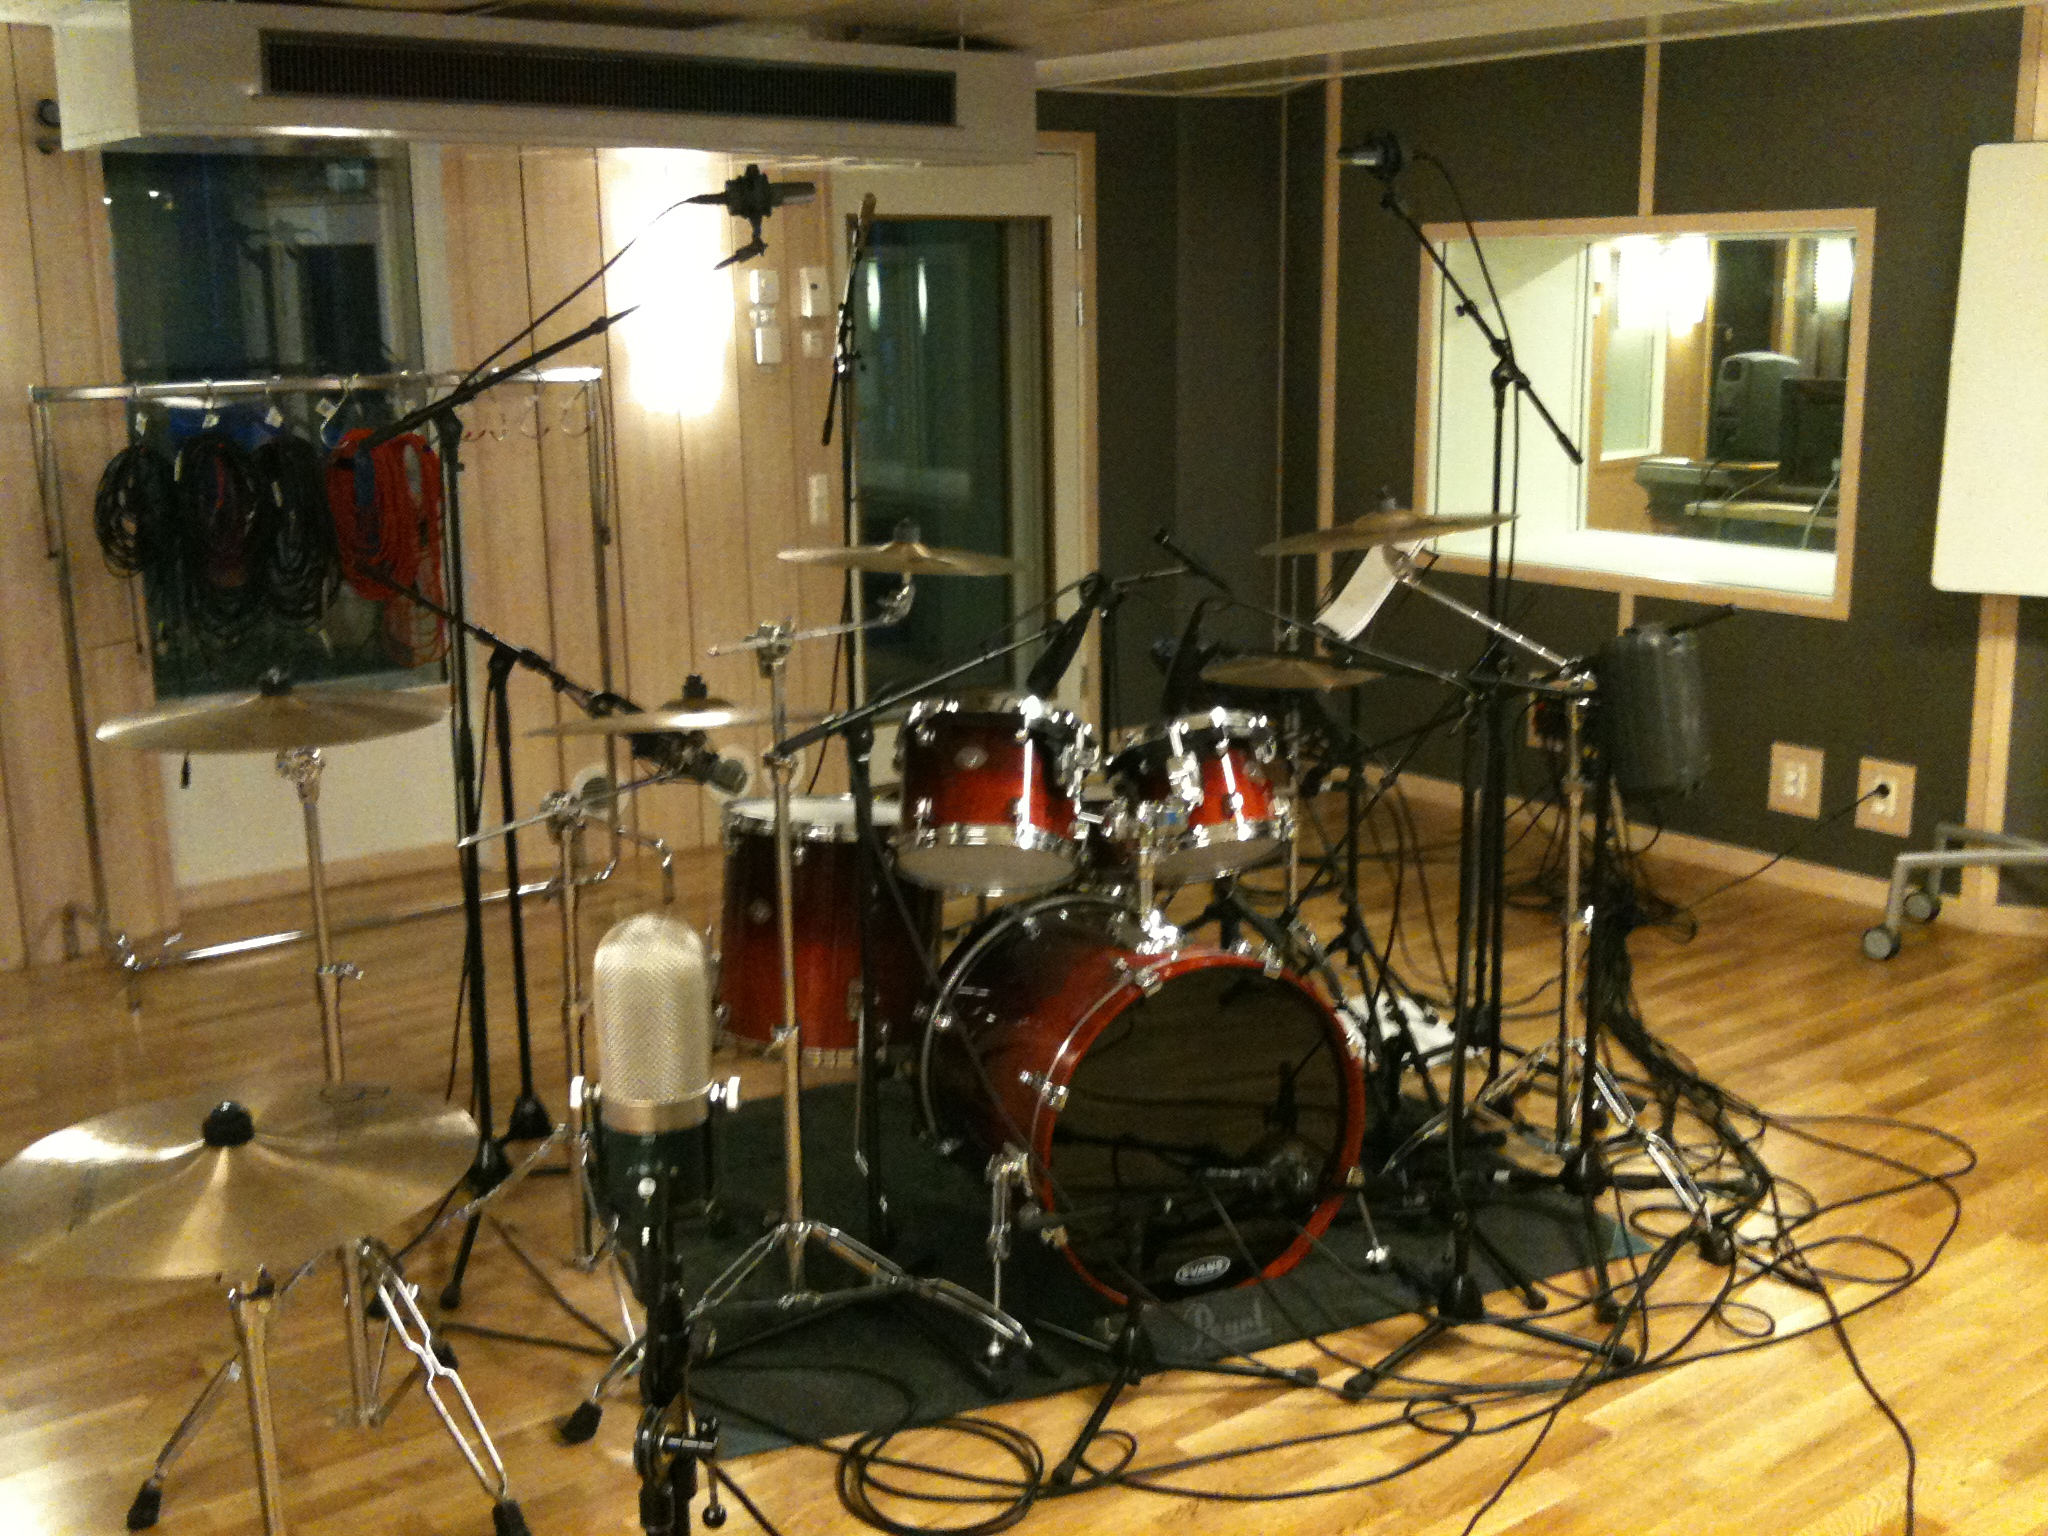 Pictures Of Miced Up Drum Kits In The Studio Img 0275 Share